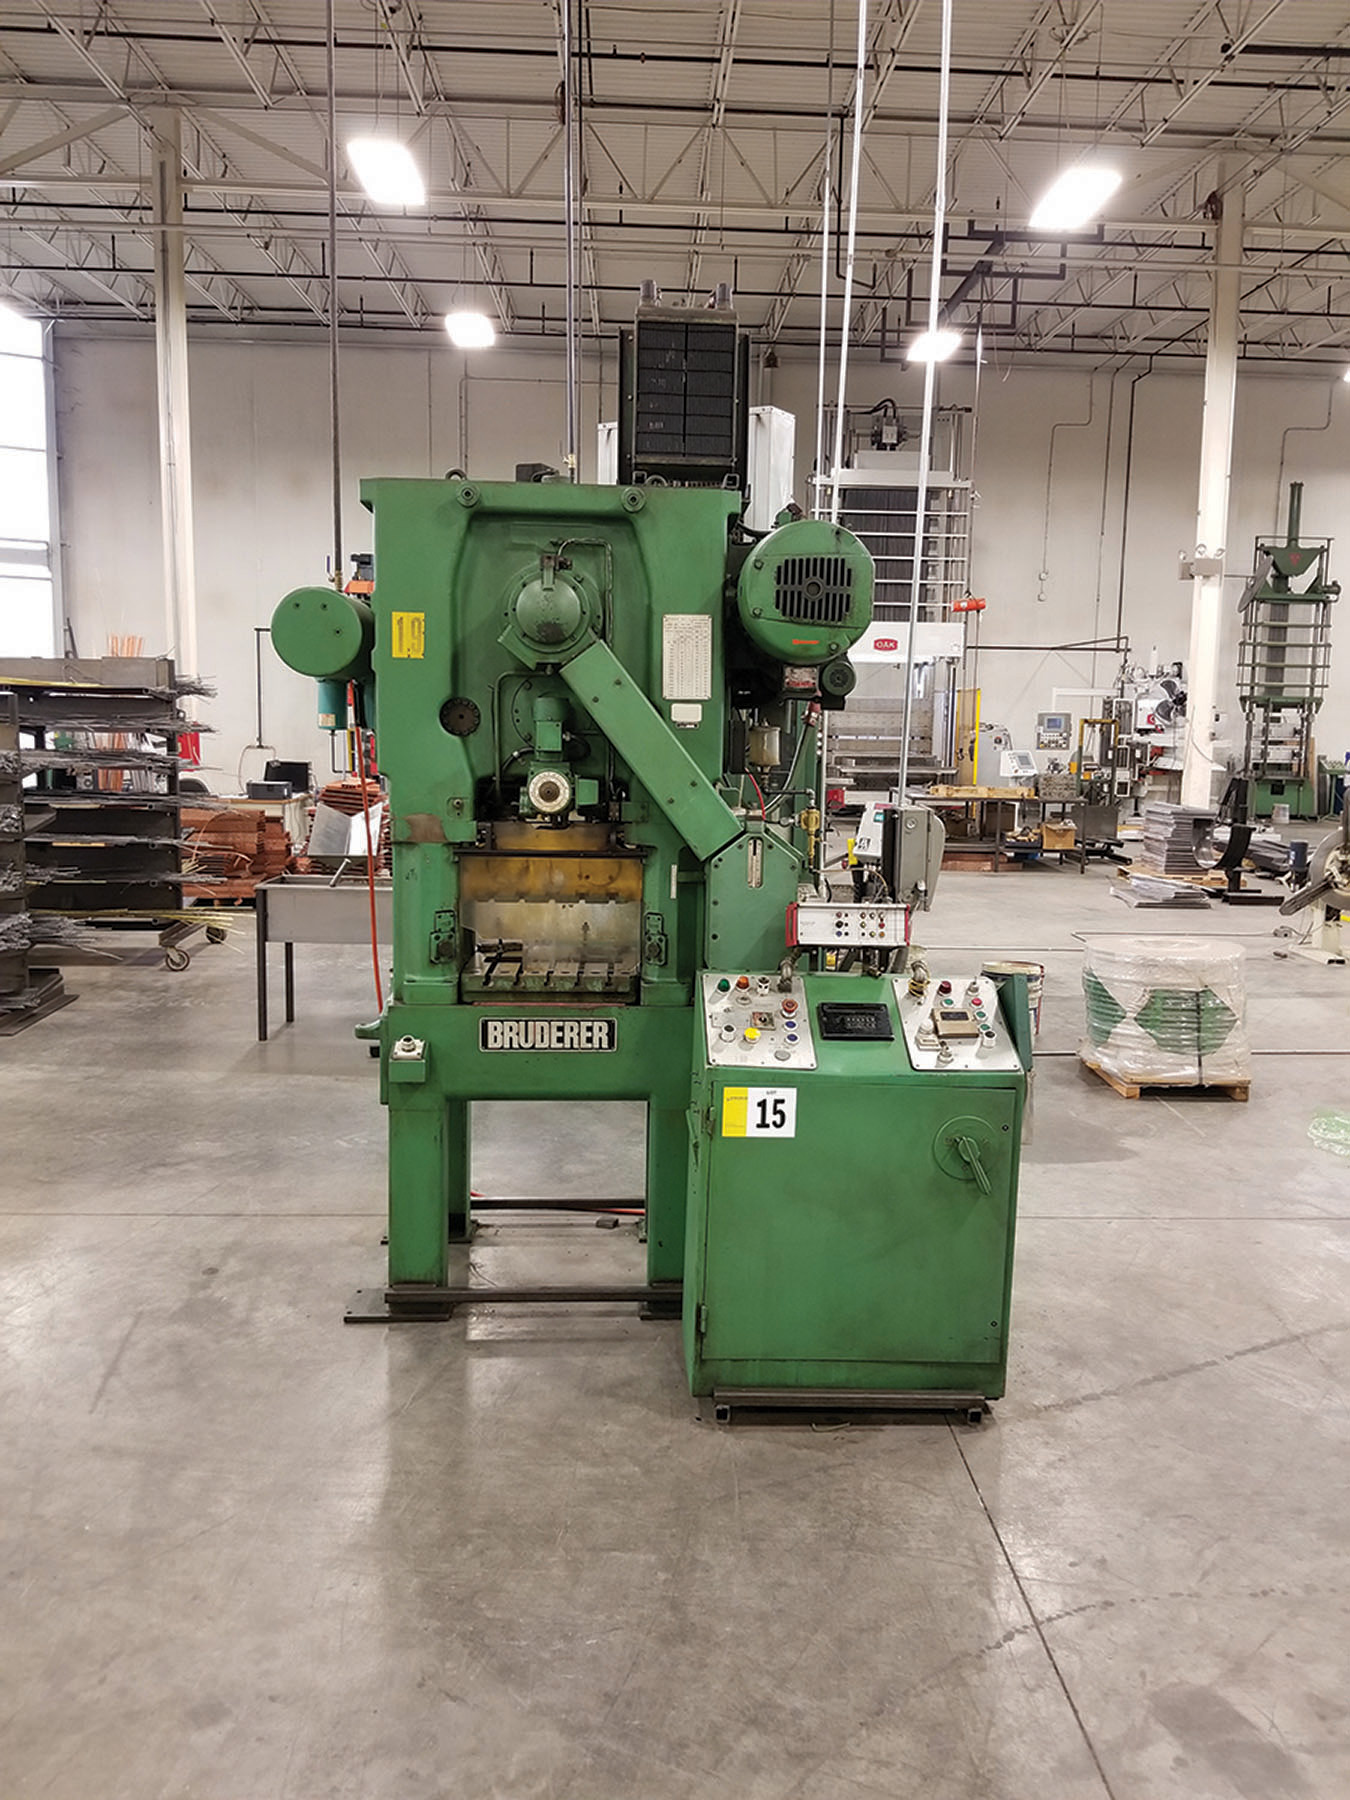 Lot 15 - BRUDERER BSTA 25 PUNCH PRESS, MALFUNCTION DETECTOR, 25-HP GE MOTOR, 21 X 21 T-SLOTTED TABLE, 21'`W X